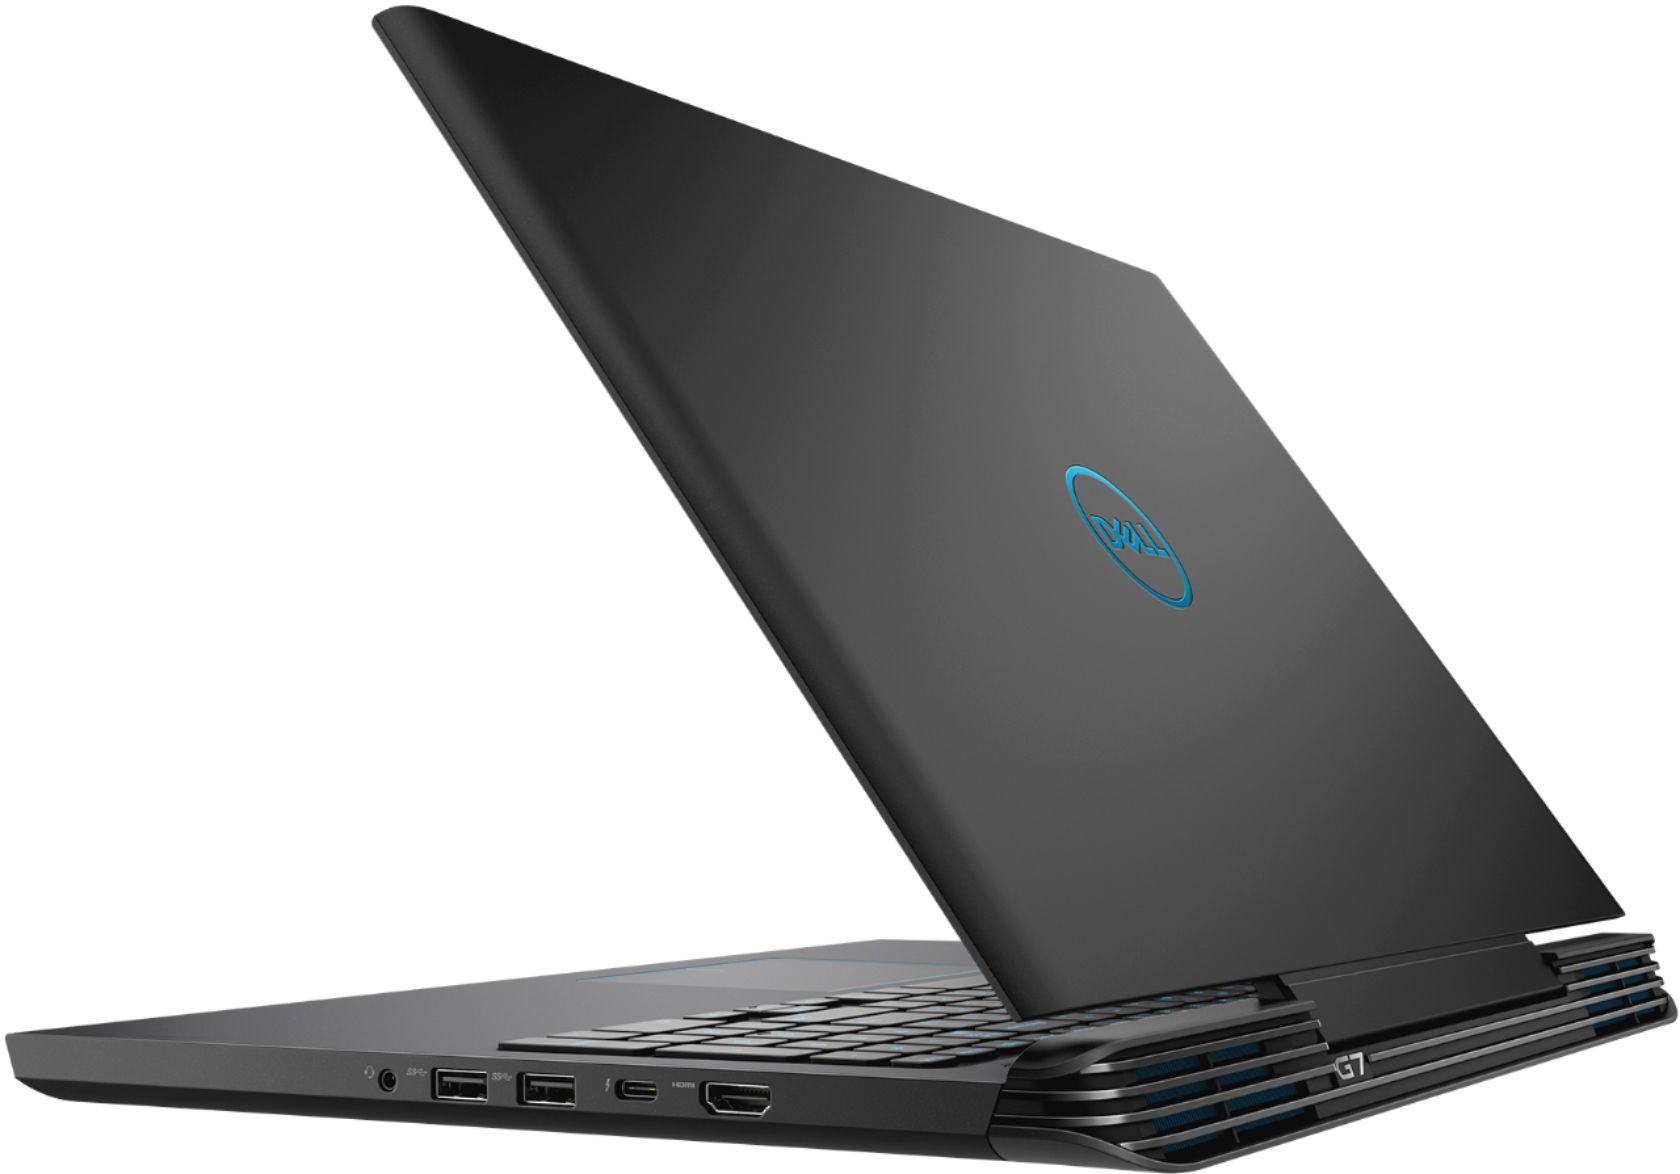 "Alt View Zoom 1. Dell - Geek Squad Certified Refurbished 15.6"" Gaming Laptop - Intel Core i7 - 8GB Memory - NVIDIA GeForce GTX 1060 - 256GB SSD - Licorice Black."